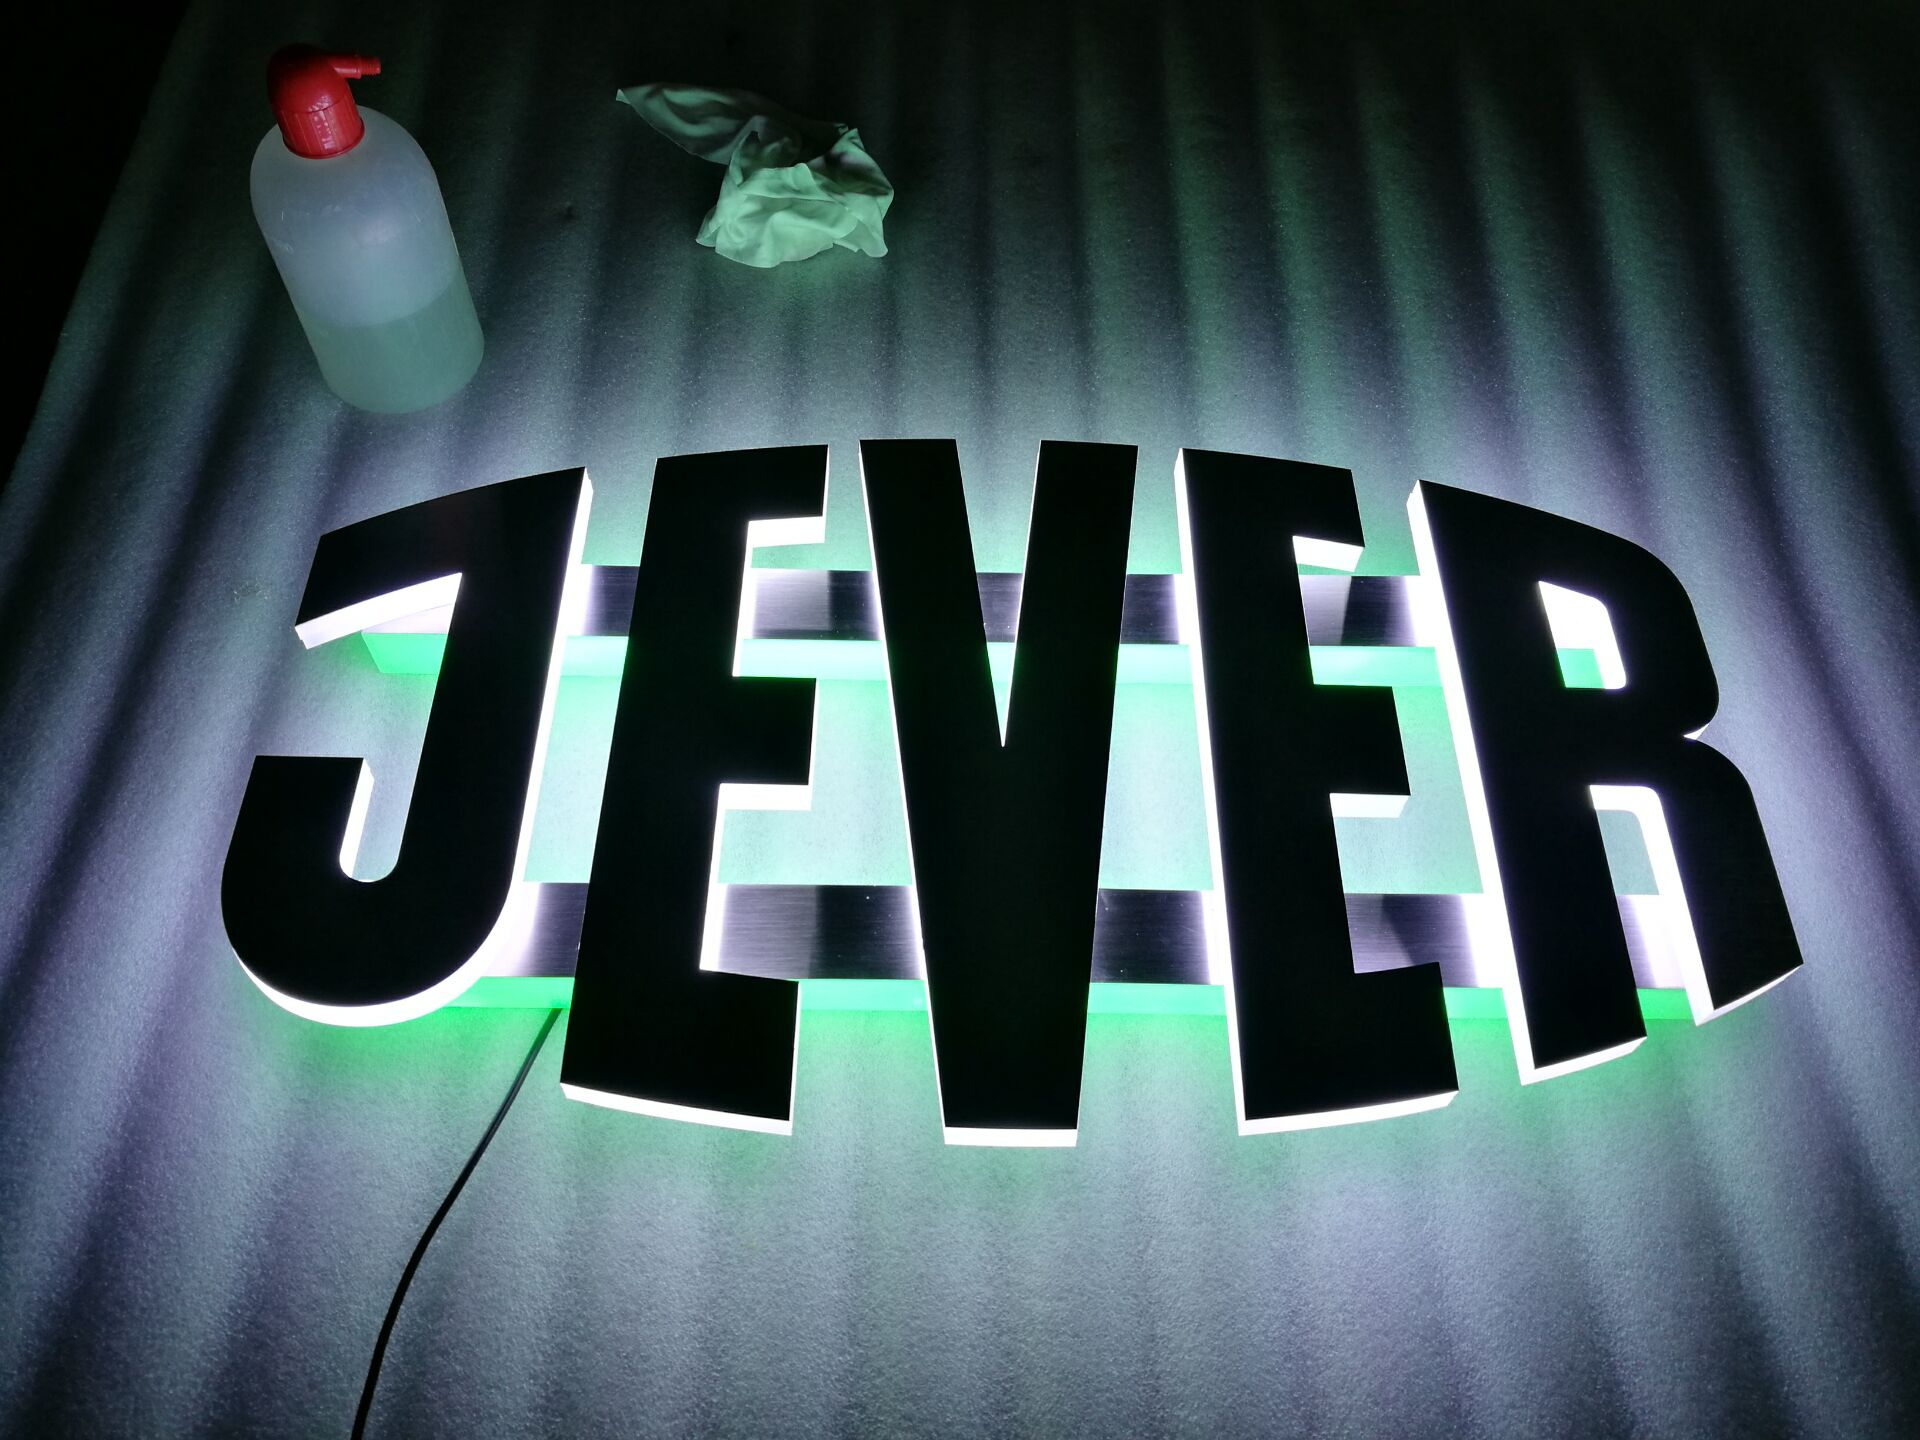 jever led display